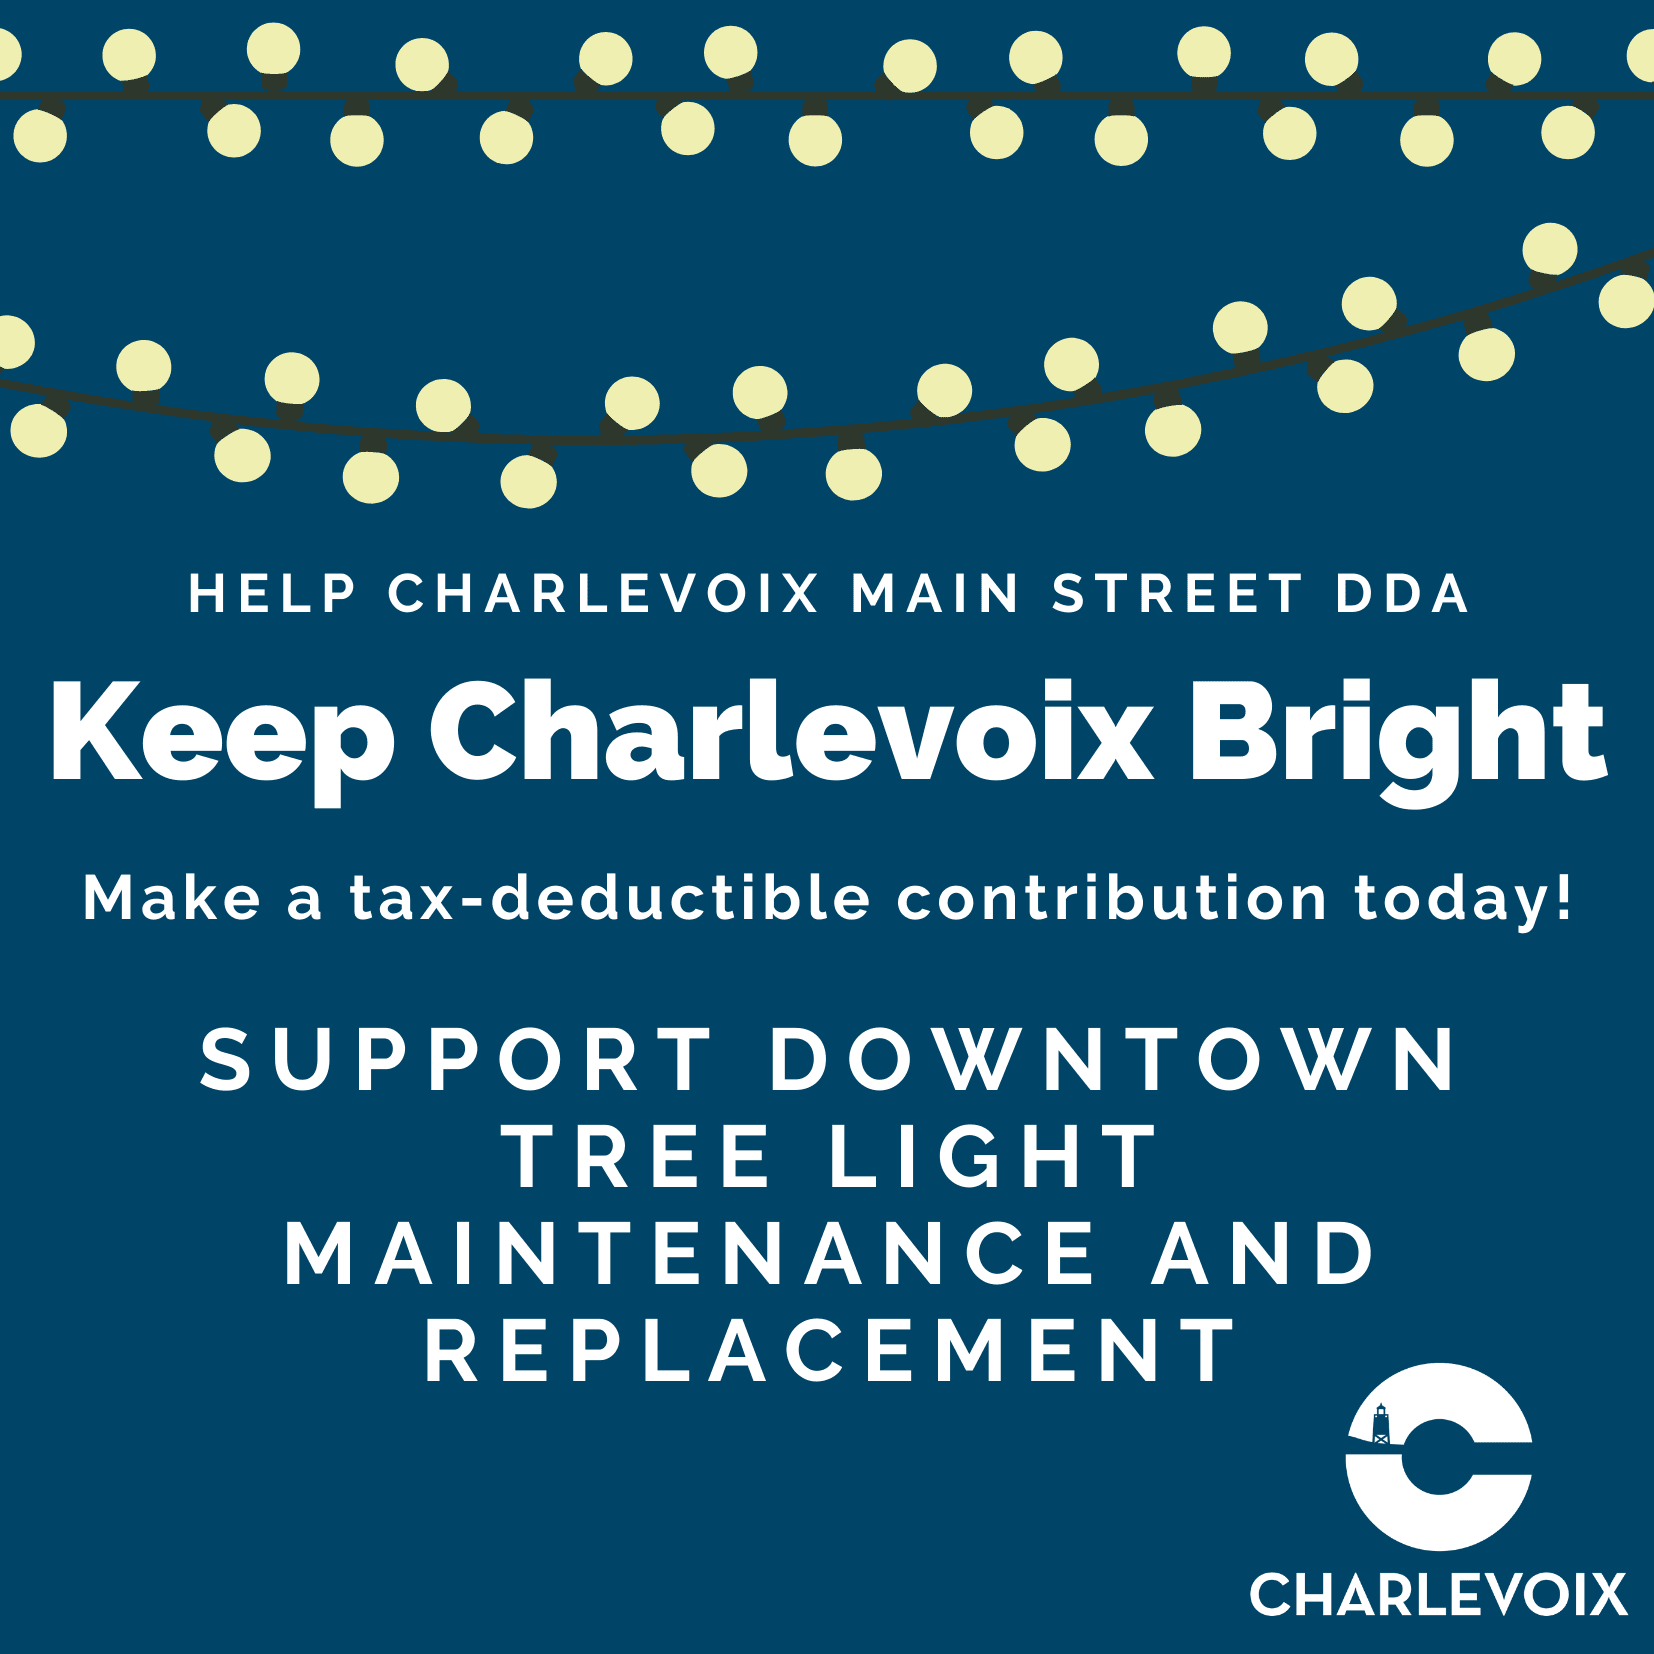 keep charlevoix bright